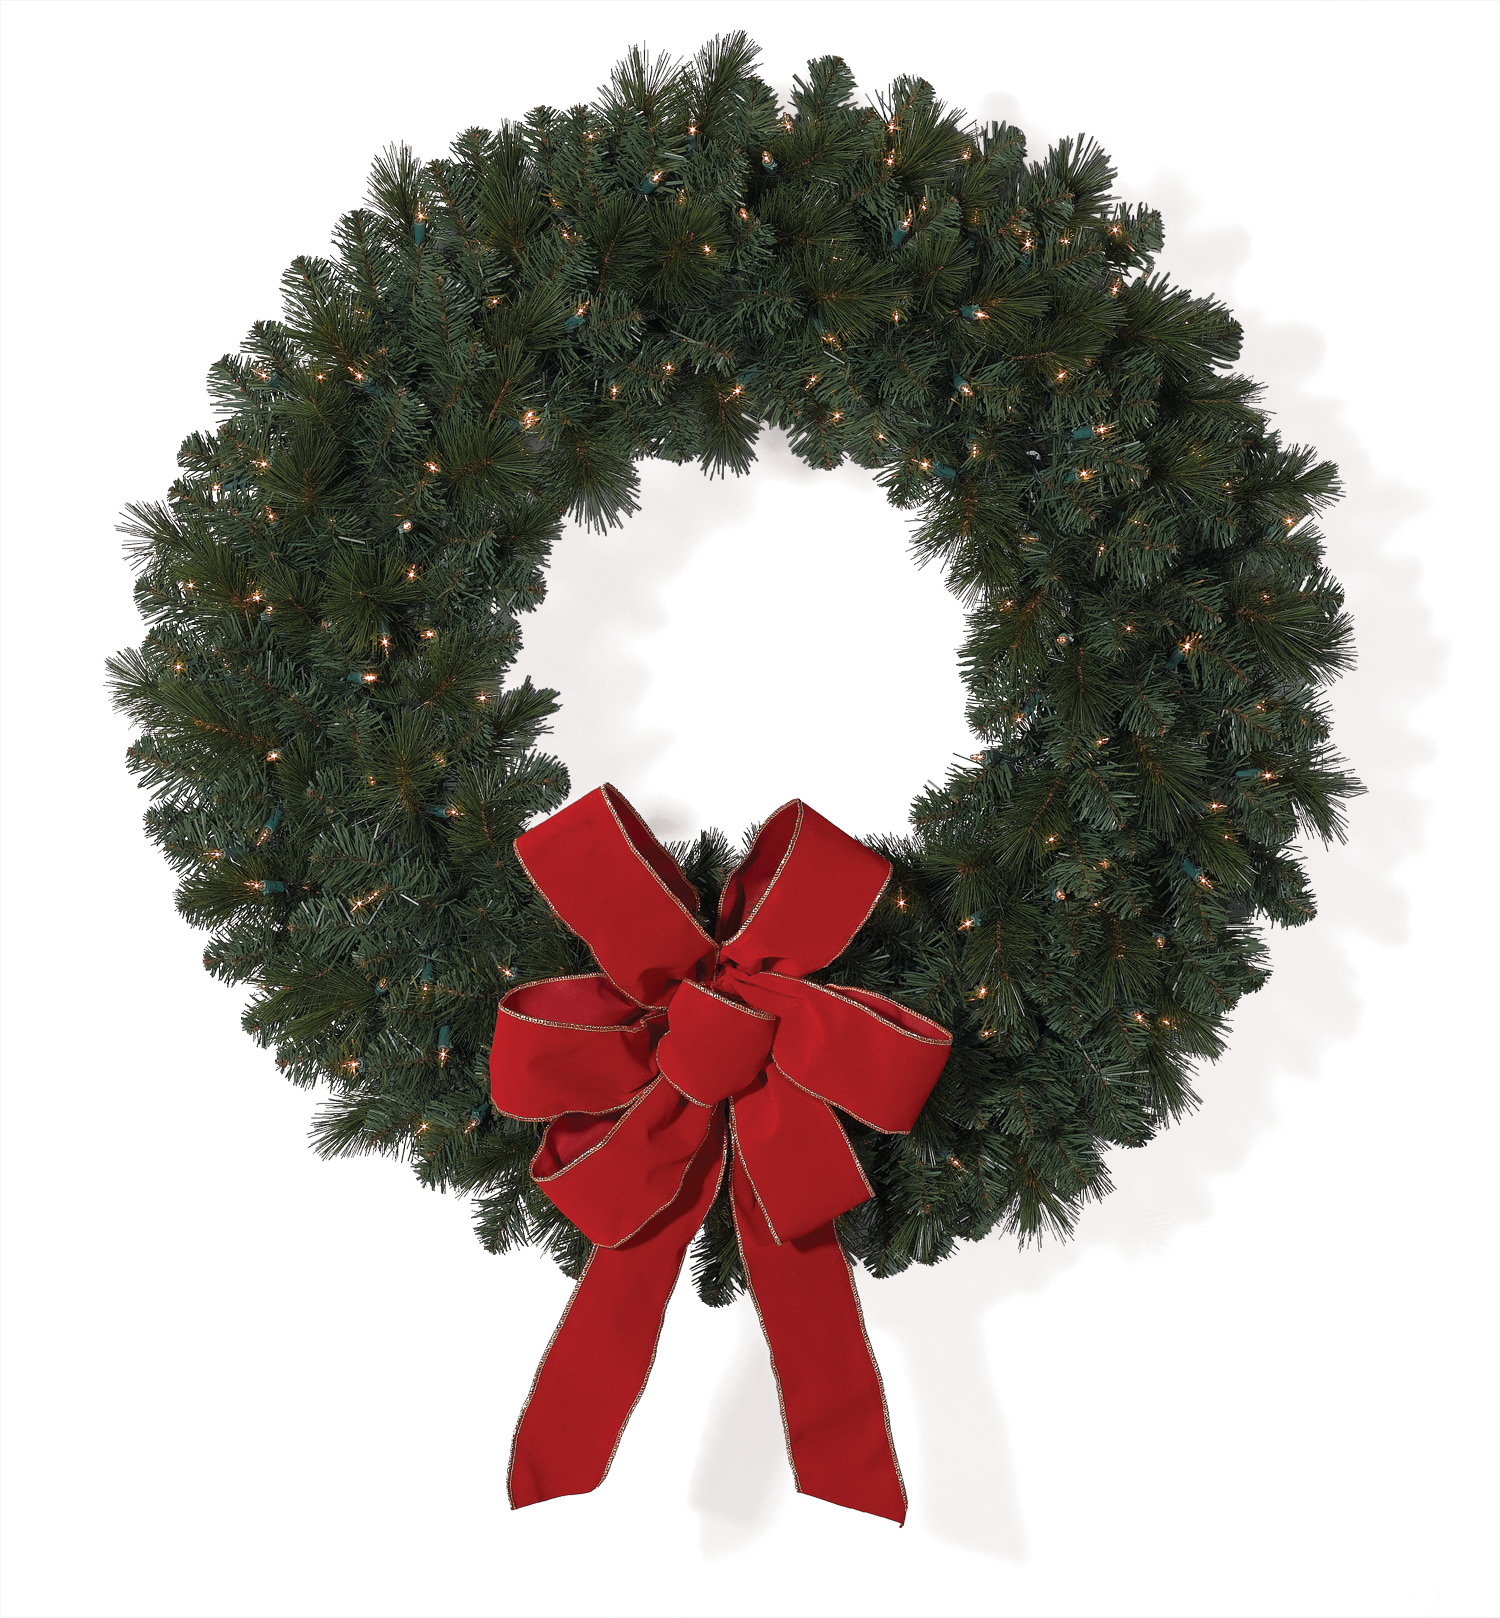 Mountain Mixed Pine Wreath